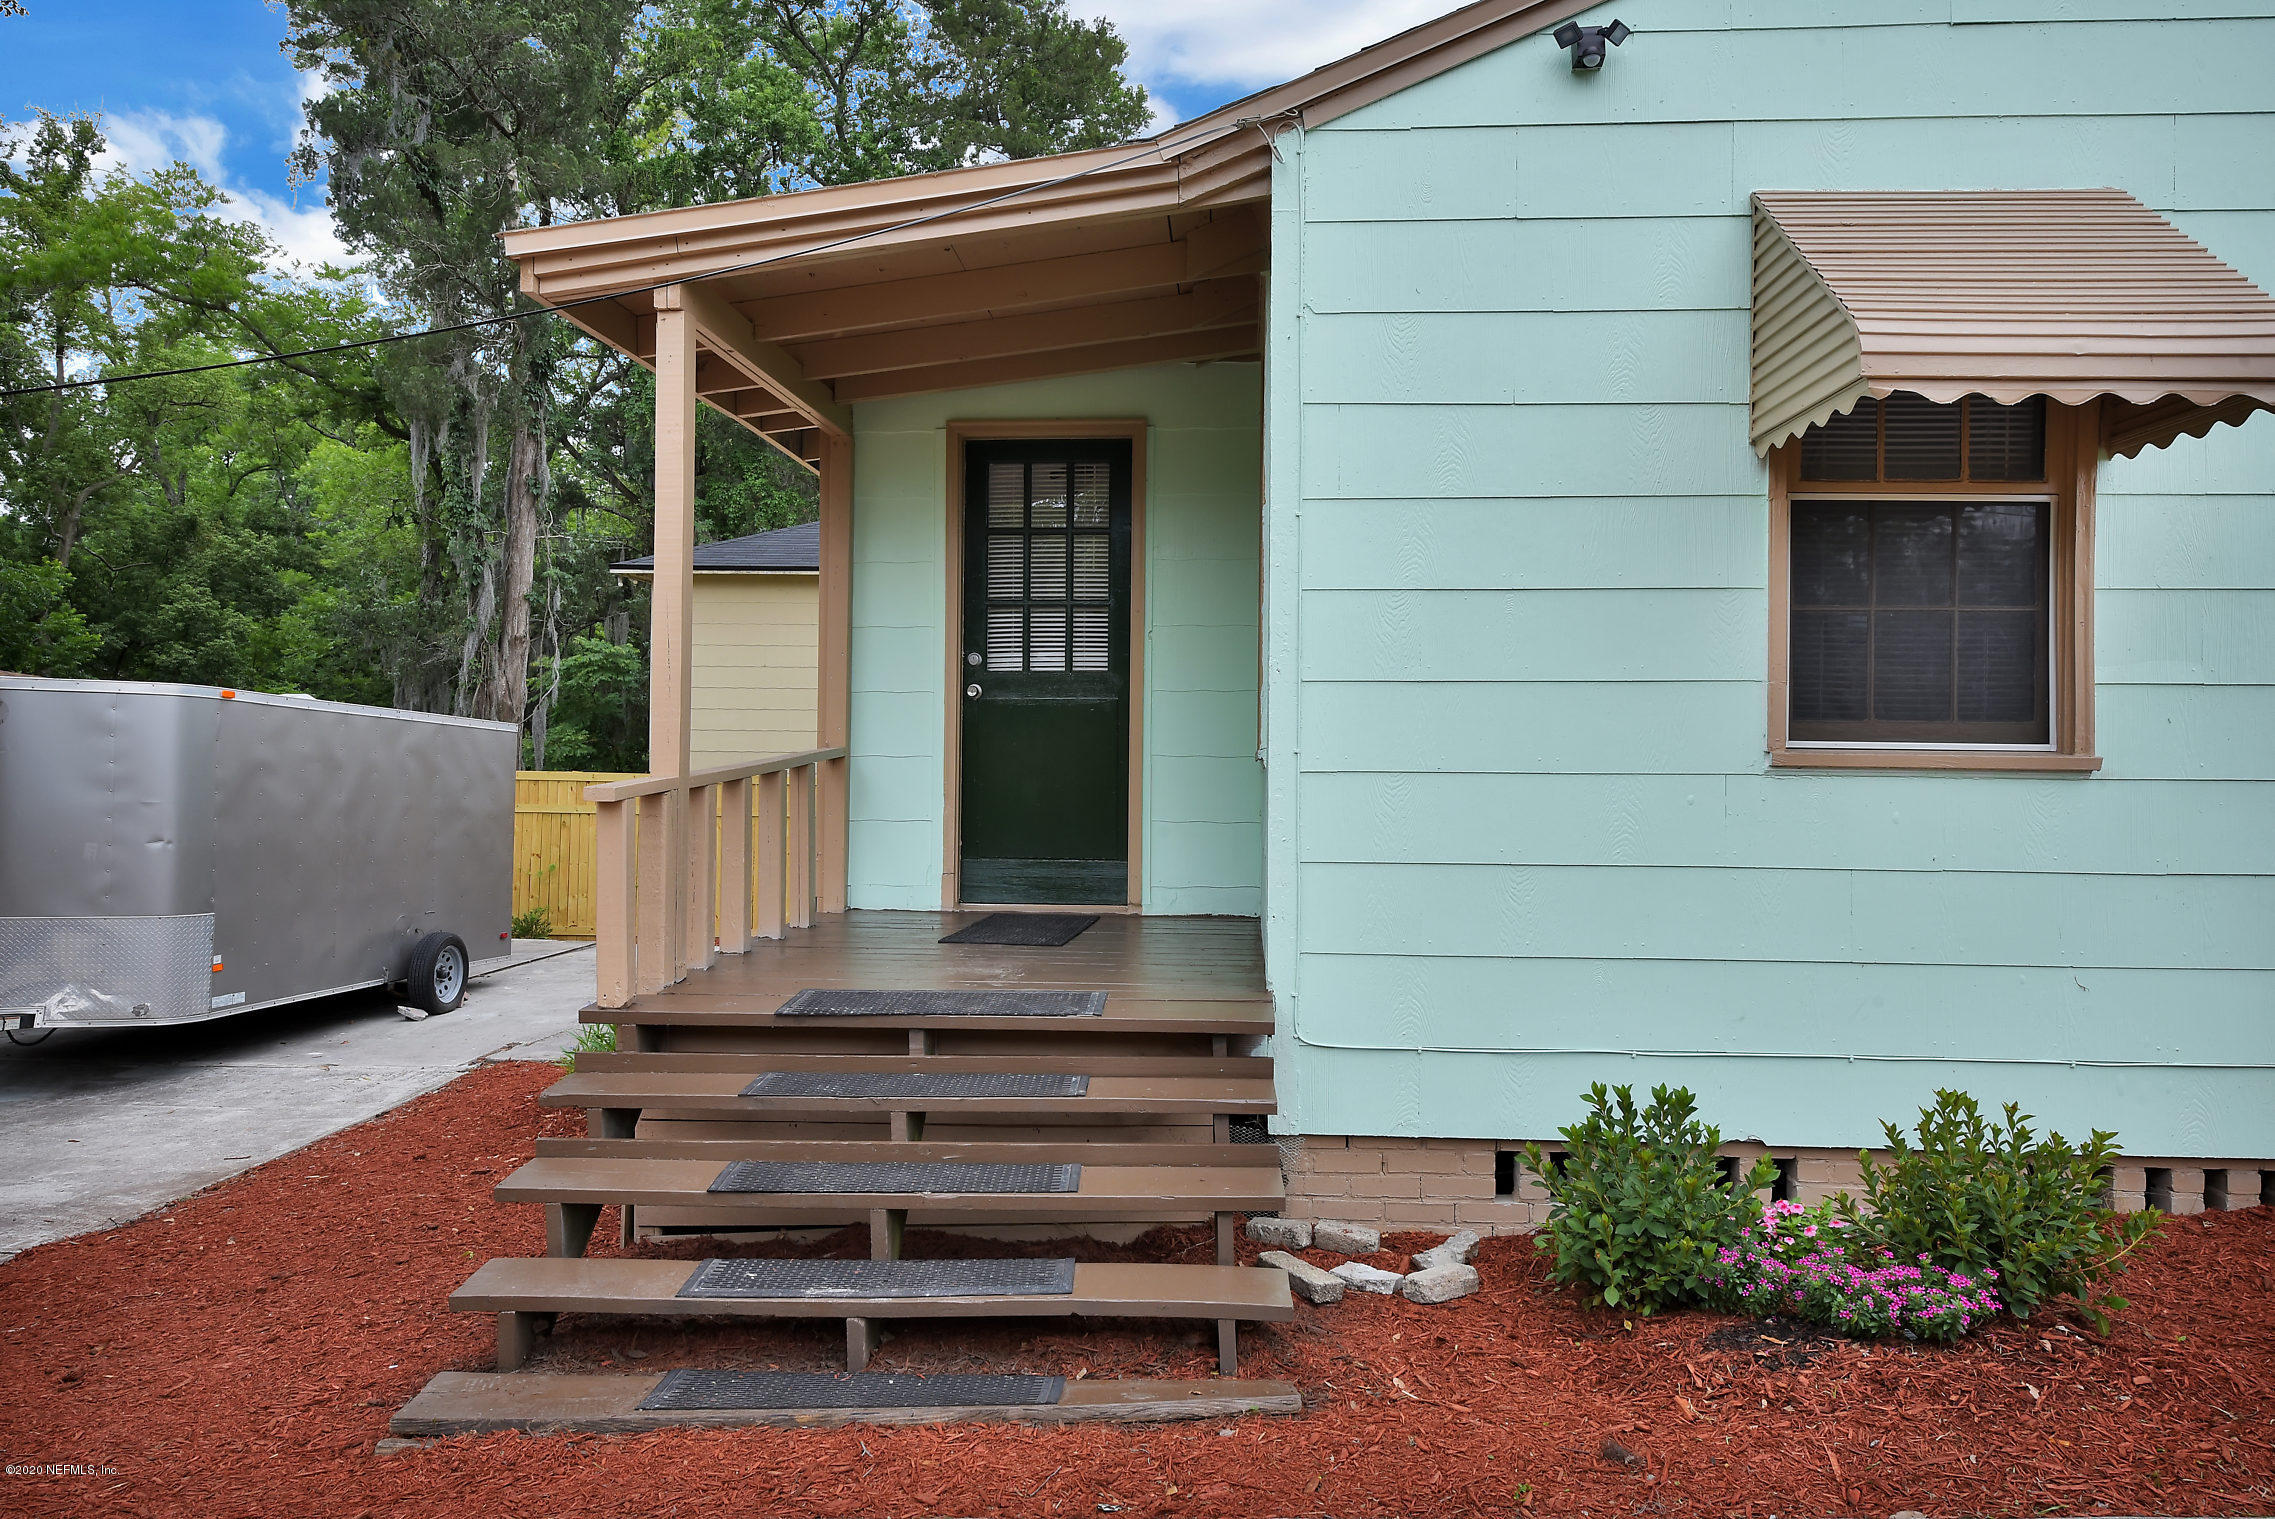 402 62ND, JACKSONVILLE, FLORIDA 32208, 2 Bedrooms Bedrooms, ,1 BathroomBathrooms,Residential,For sale,62ND,1054403